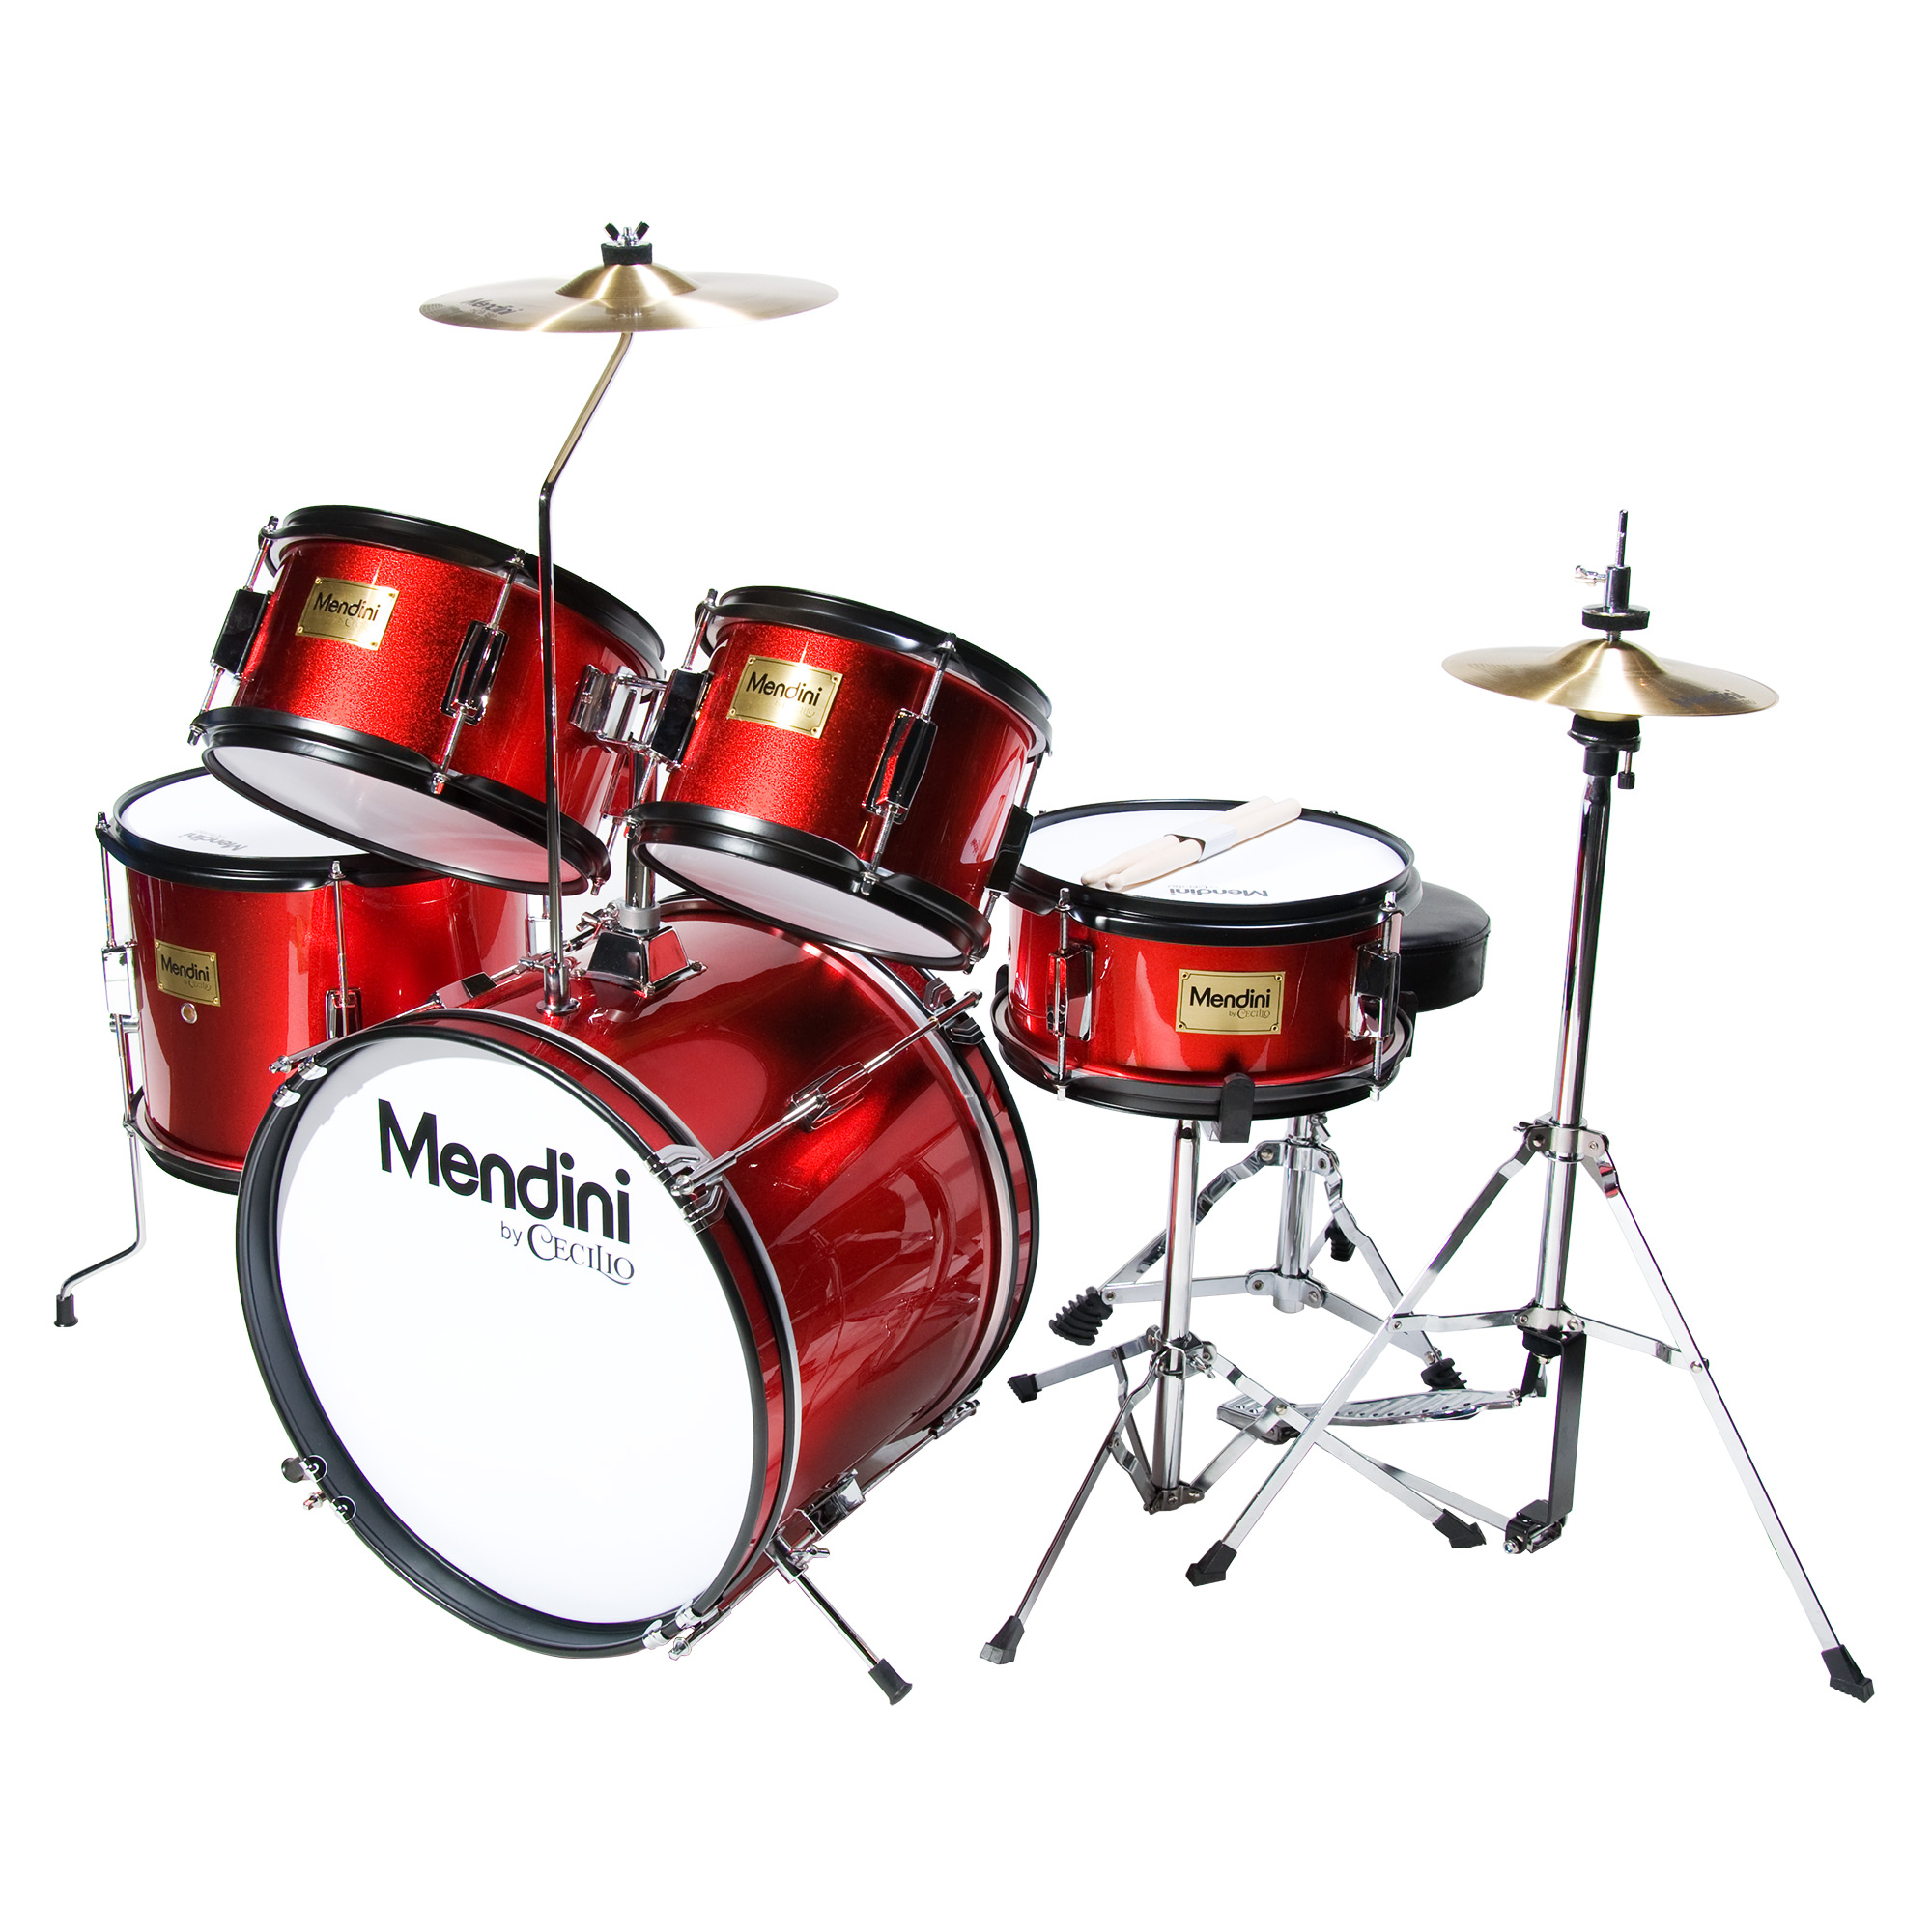 Mendini by Cecilio 16″ 5-Piece Complete Kids / Junior Drum Set with Adjustable Throne, Cymbal, Pedal & Drumsticks, Metallic Bright Red, MJDS-5-BR